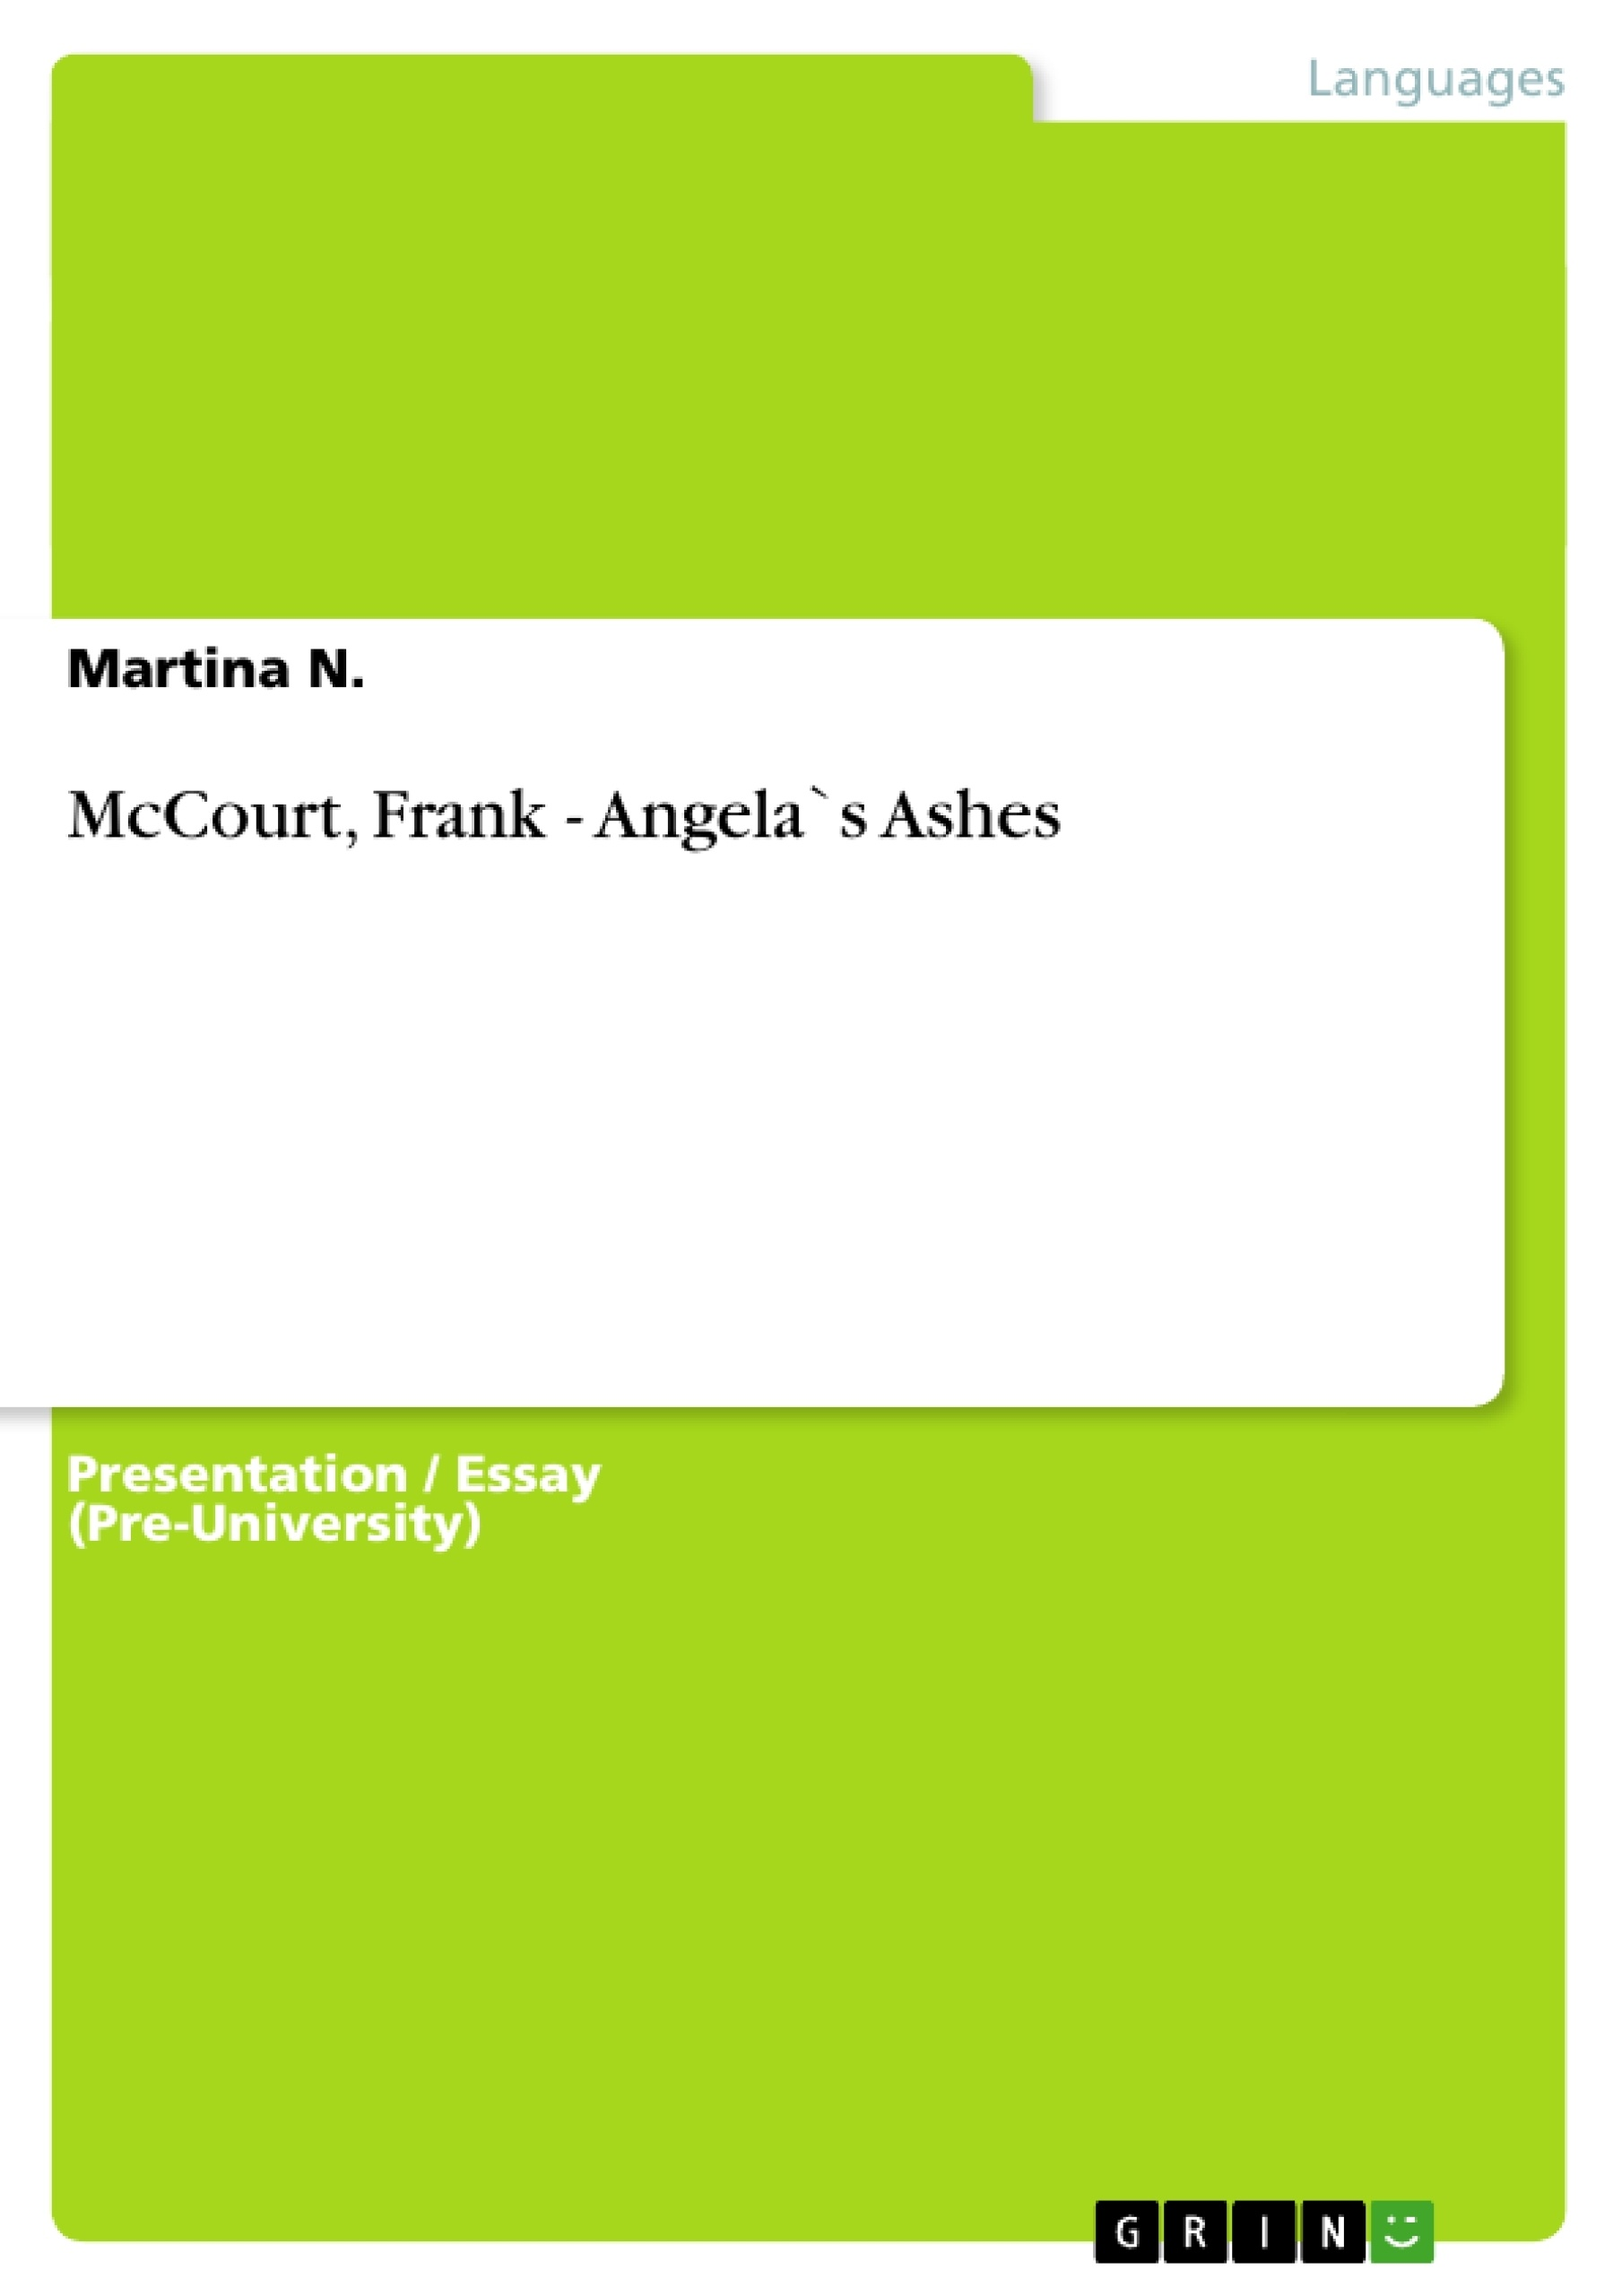 angelas ashes essay example 7 Free essay examples, how to write essay on angela's ashes frankie money mother example essay, research paper, custom writing write my essay.